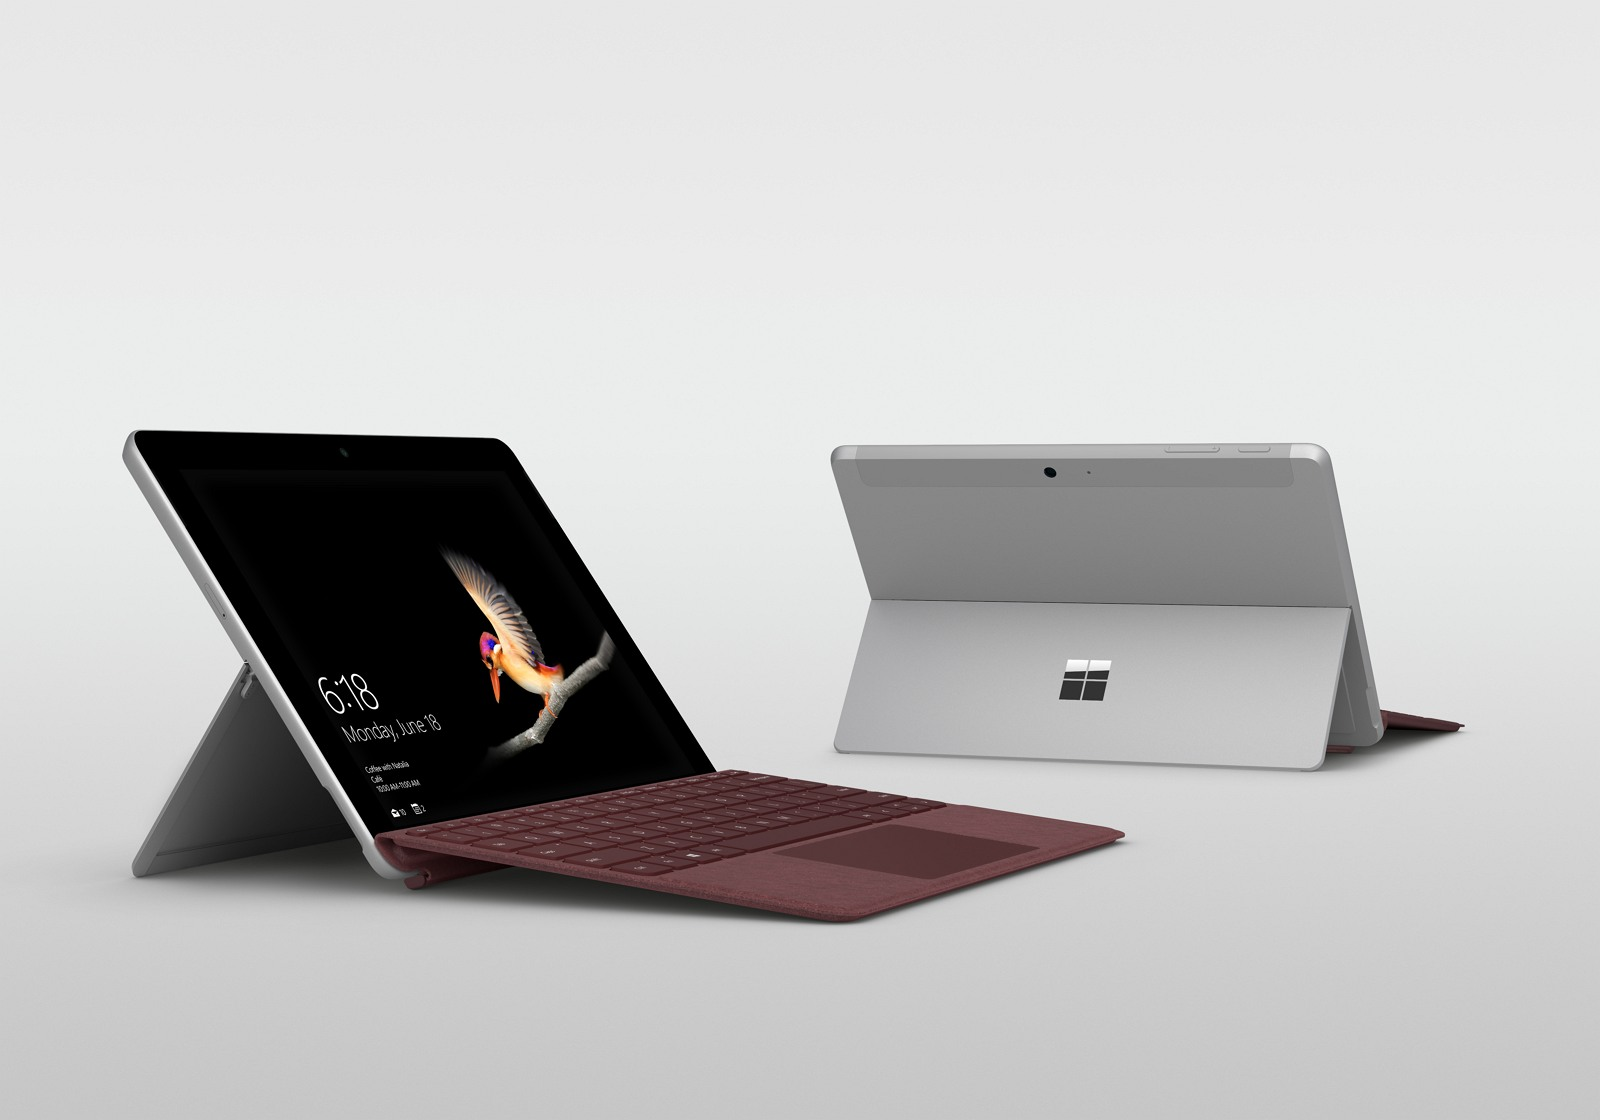 Surface Go 2018 device front and back